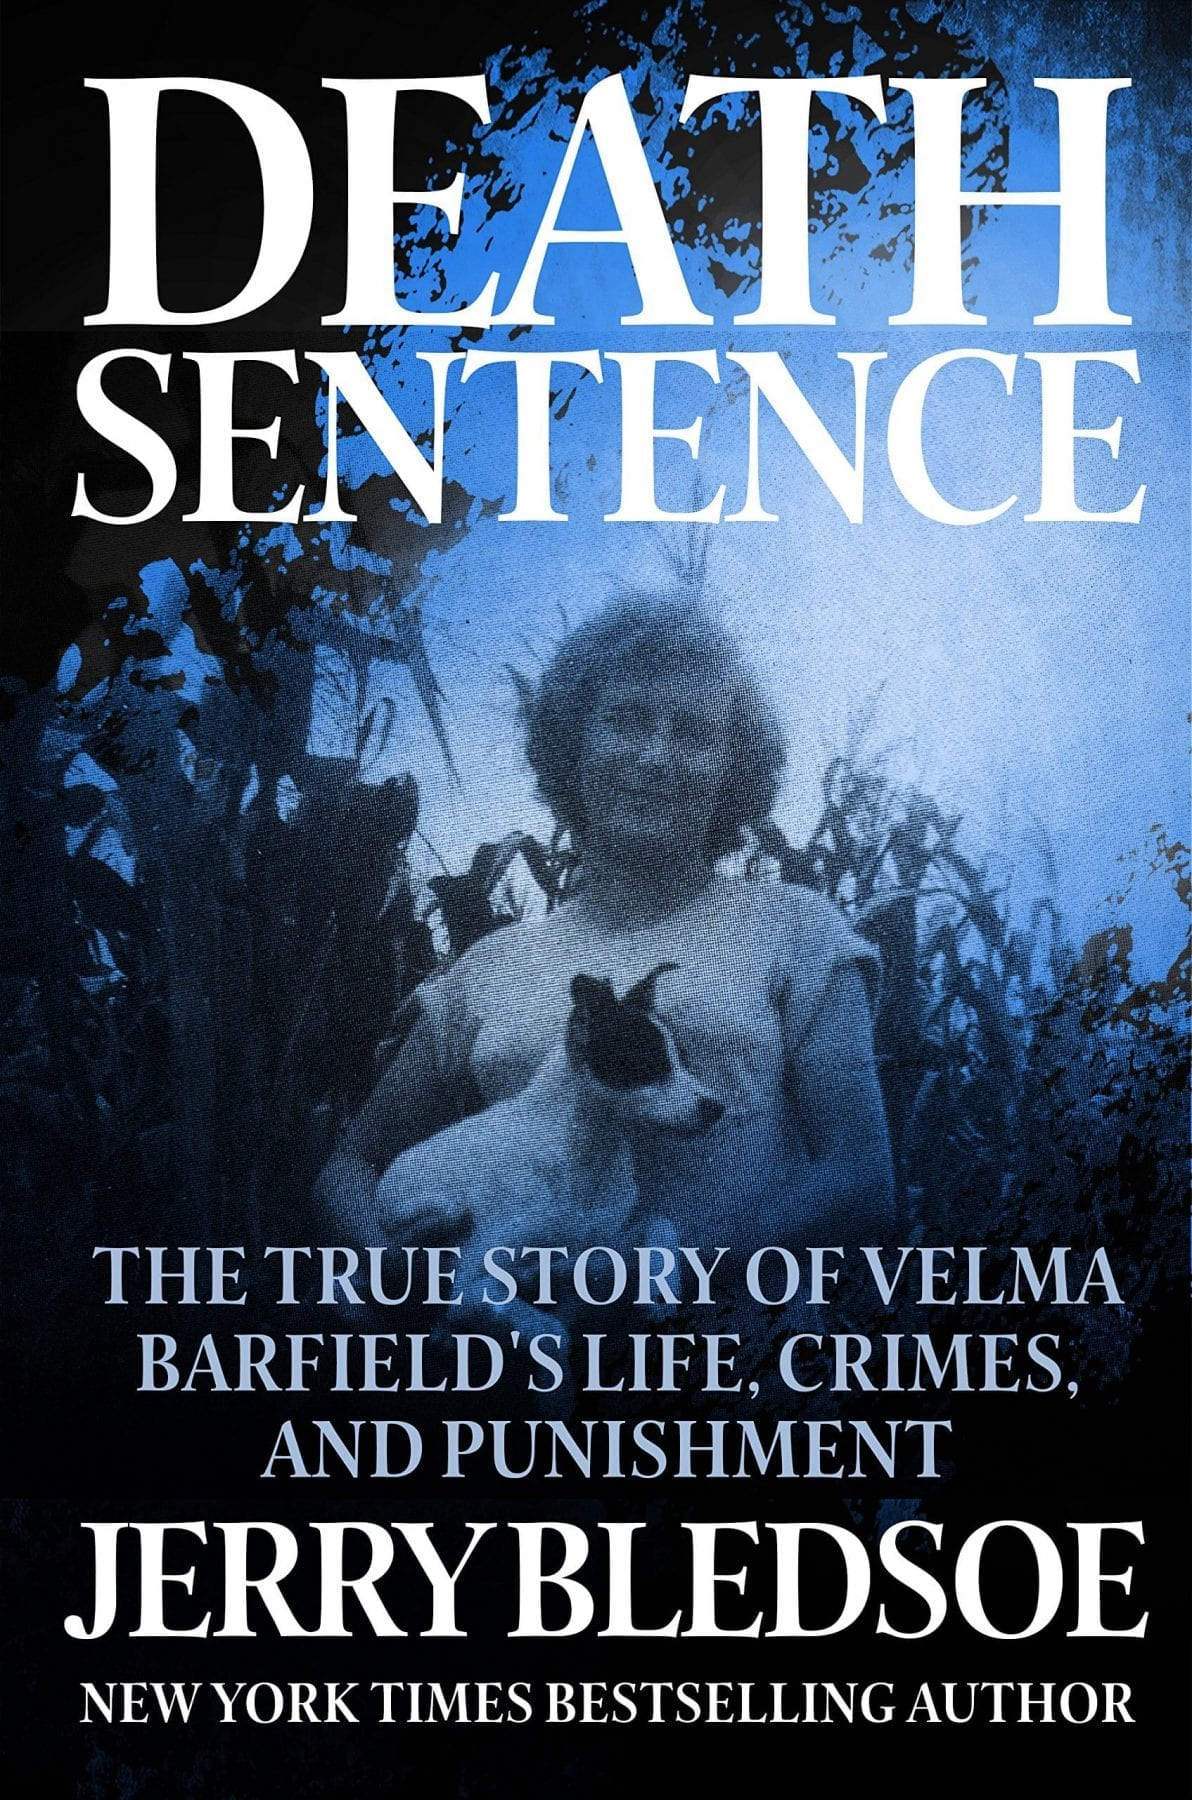 Death Sentence- The True Story of Velma Barfield's Life, Crimes, and Punishment by Jerry Bledsoe